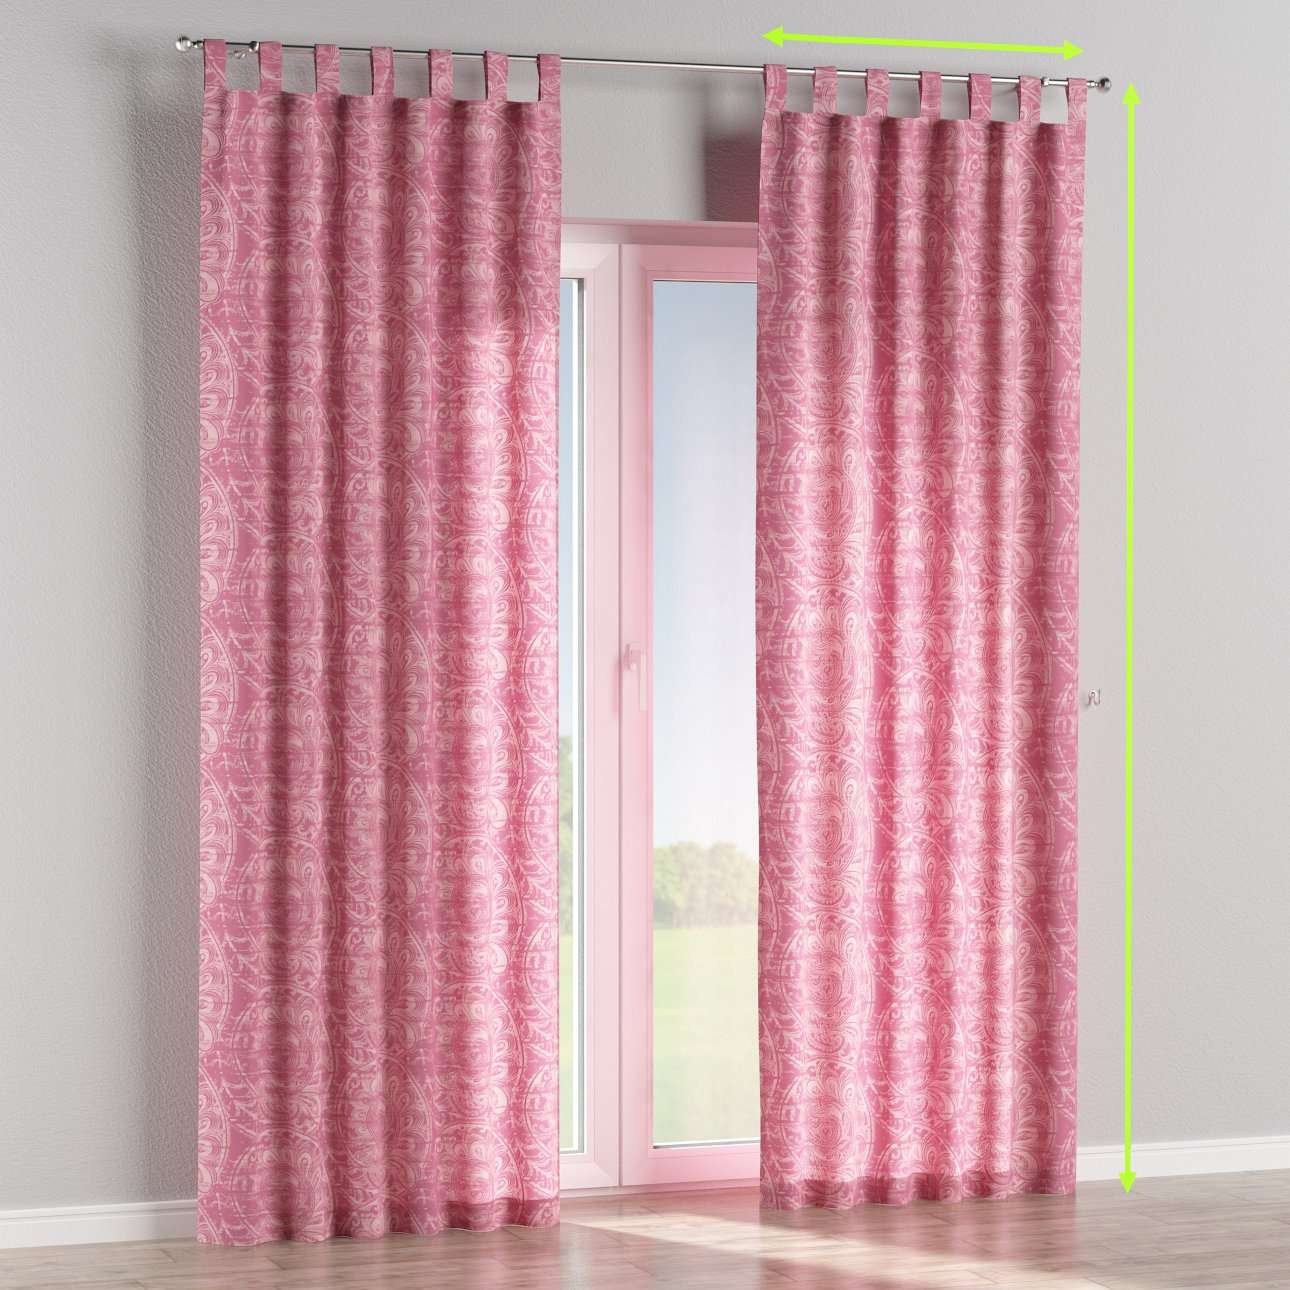 Tab top curtains in collection Mirella, fabric: 143-07